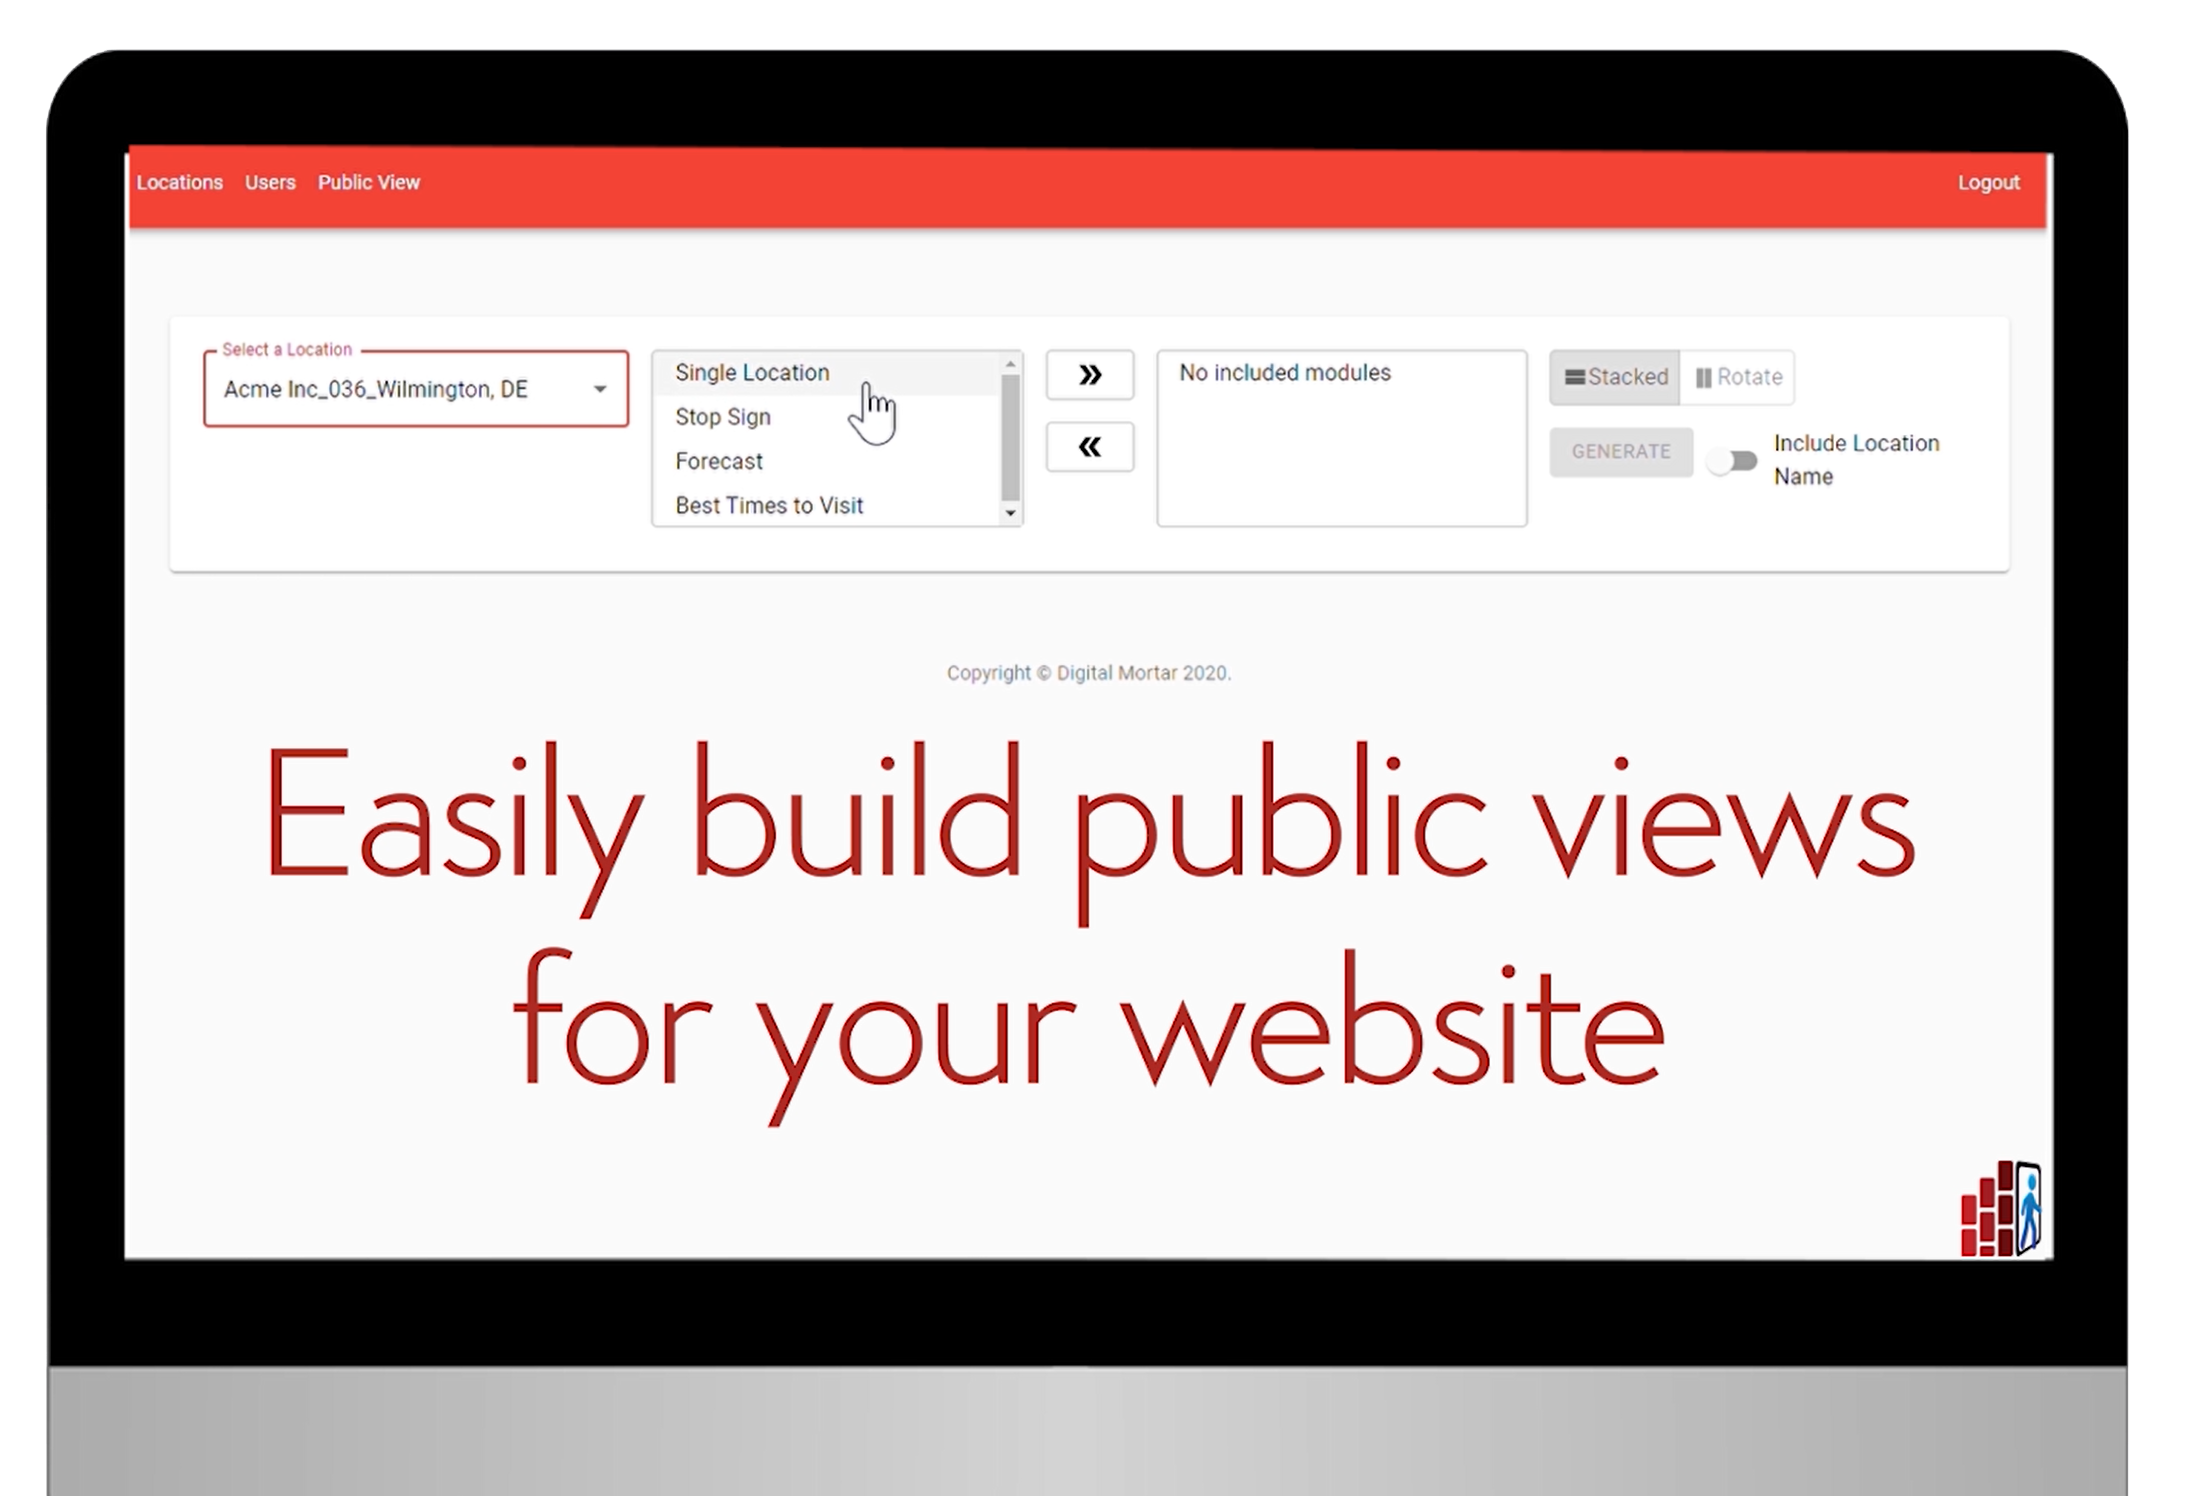 easily build public views for your website graphic on a computer